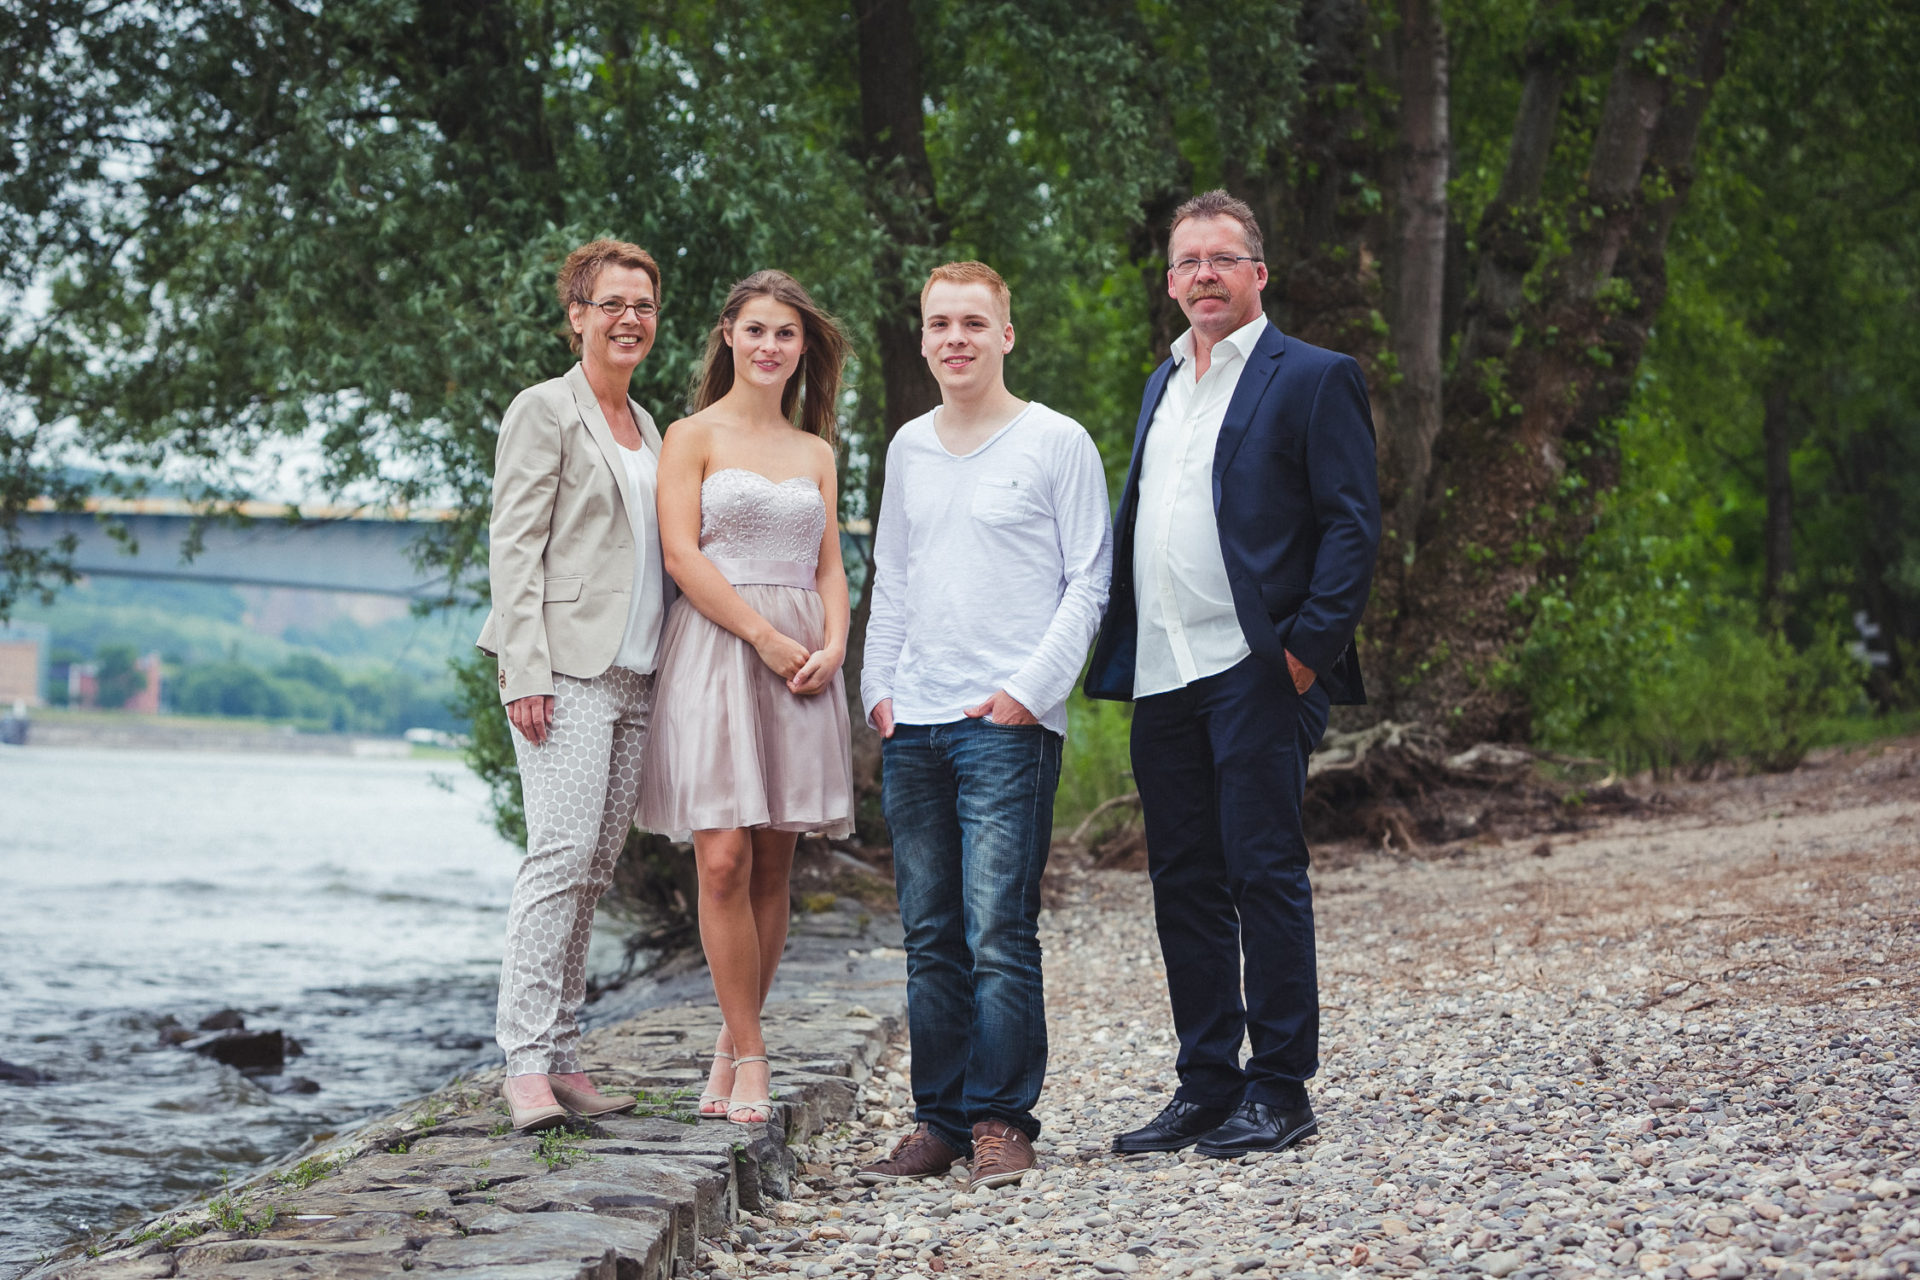 Familienshooting-2983